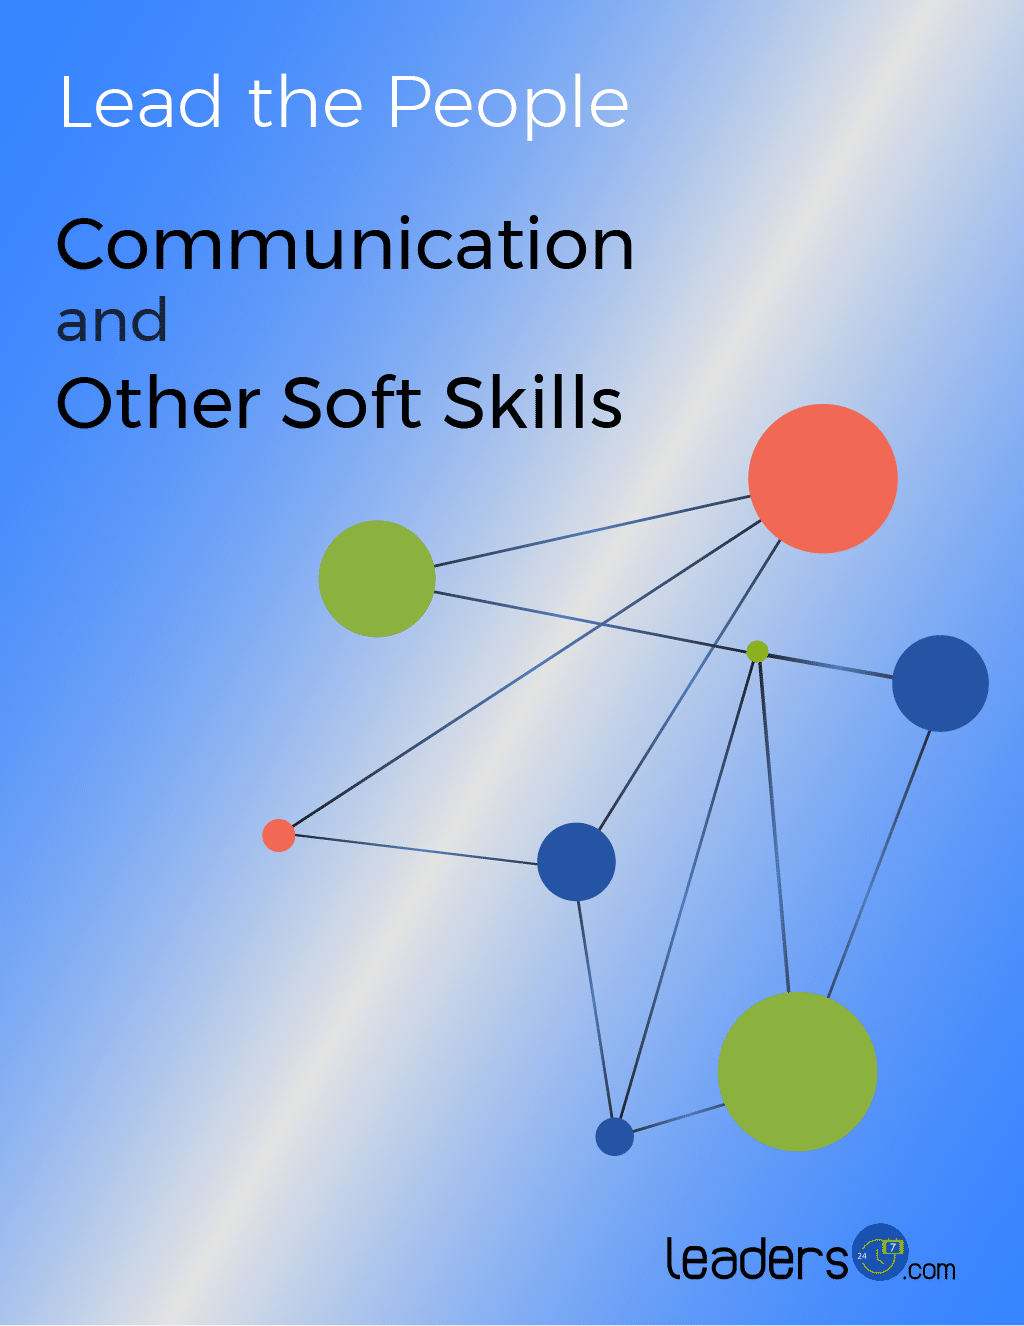 Communication and Other Soft Skills